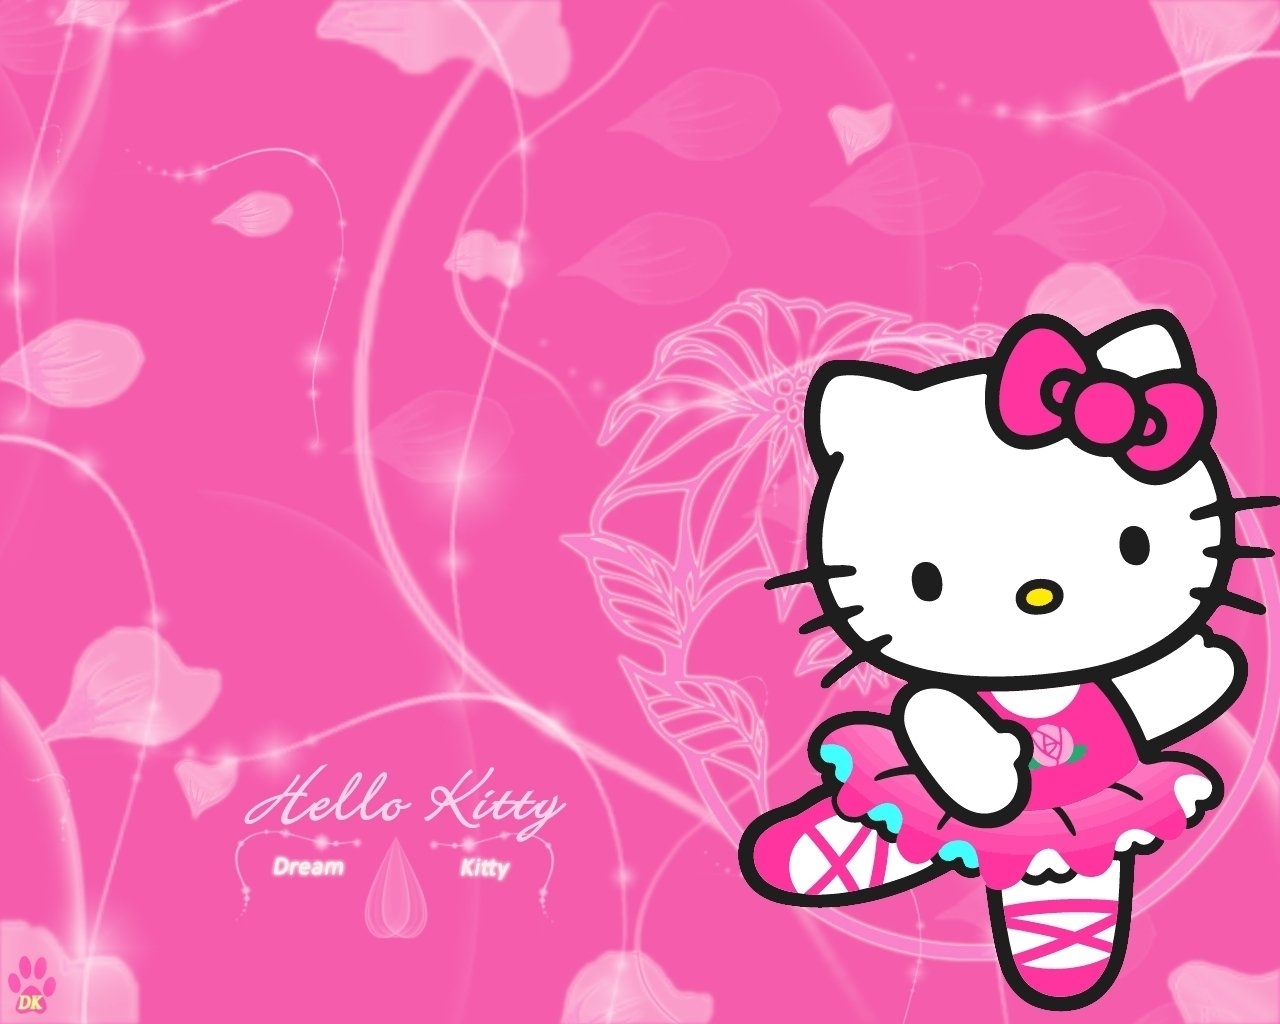 67 hello kitty hd wallpapers | background images - wallpaper abyss